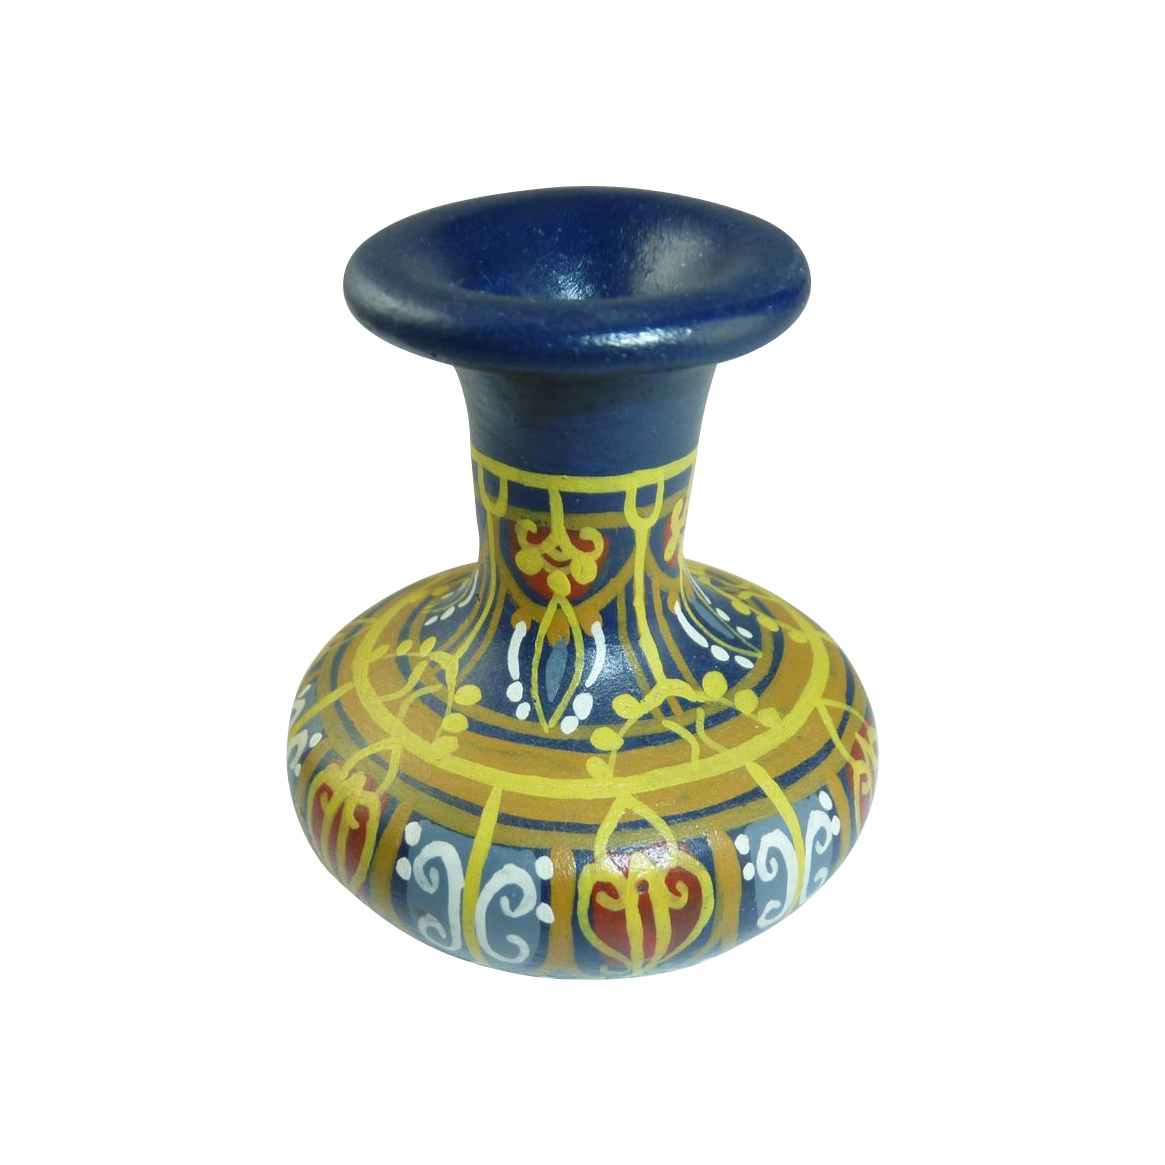 Blue Miniature Hand Painted Pottery Urn Vase